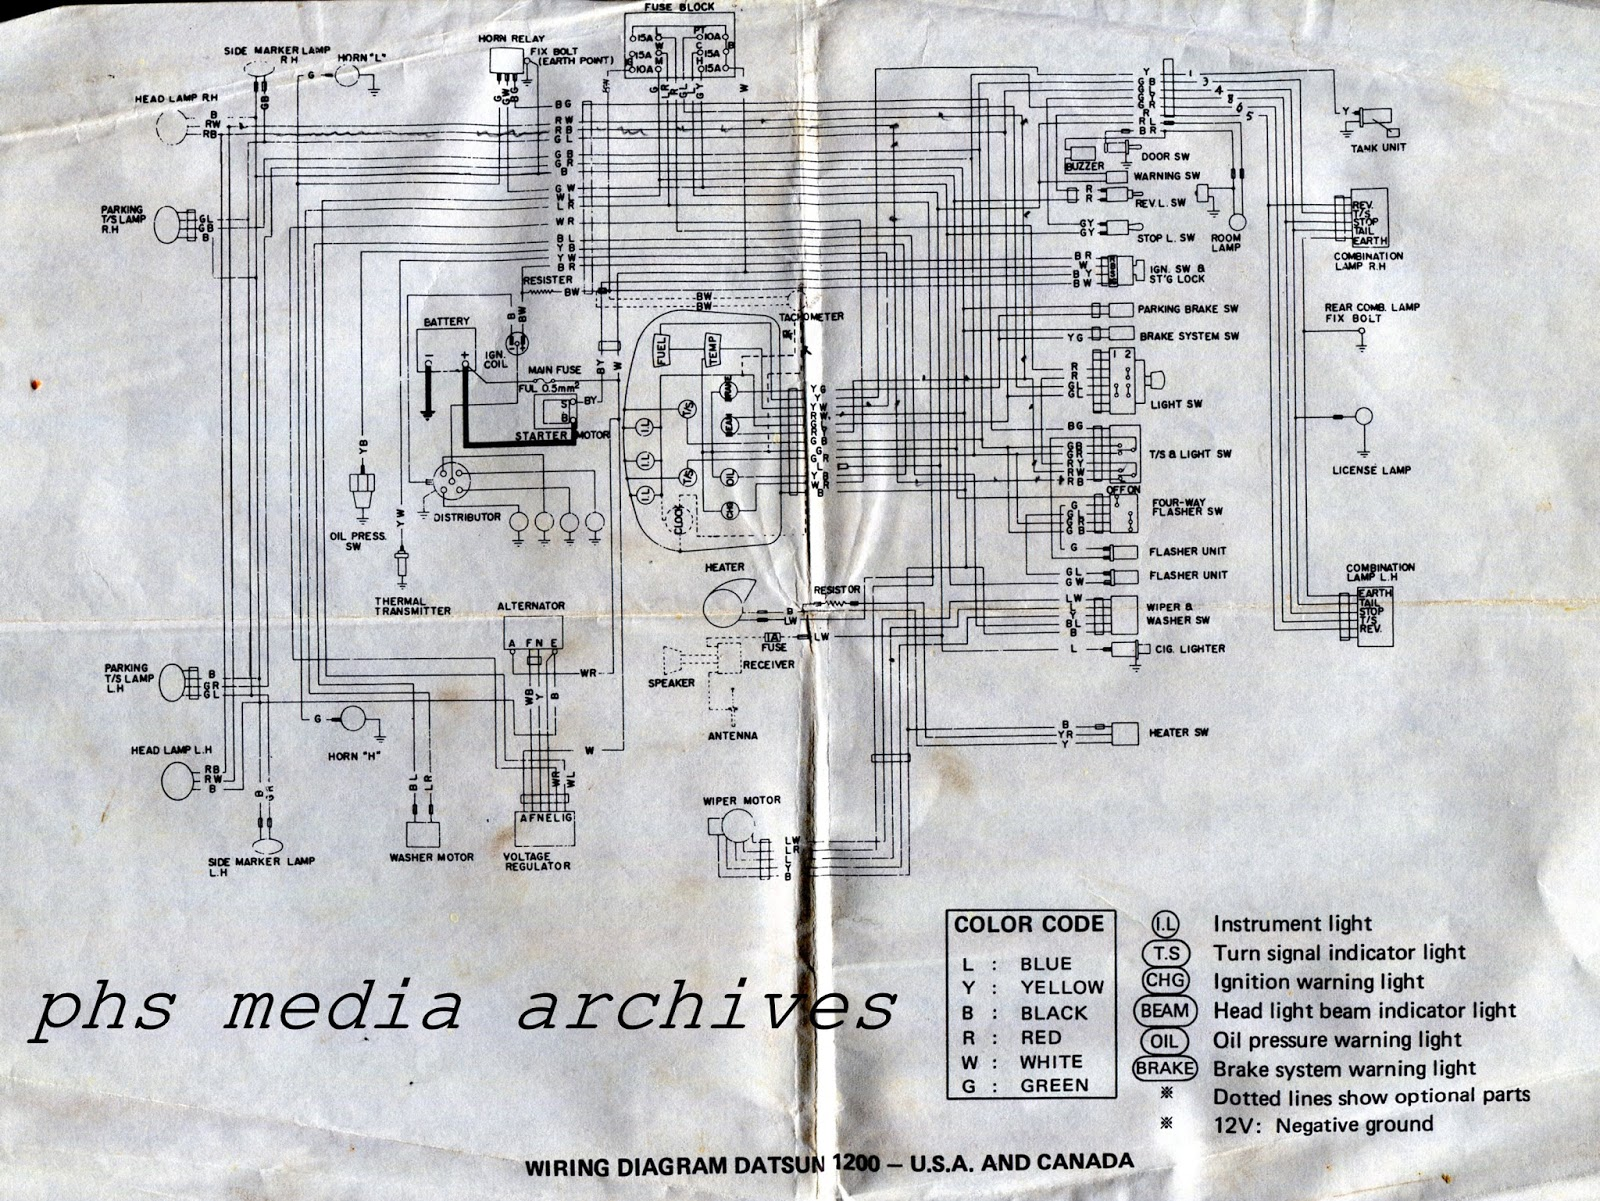 1971 Pontiac Wiring Diagram Diagrams Starter Phs Tech Series 72 Datsun 1200 Rh Phscollectorcarworld Blogspot Com Sunfire Lemans